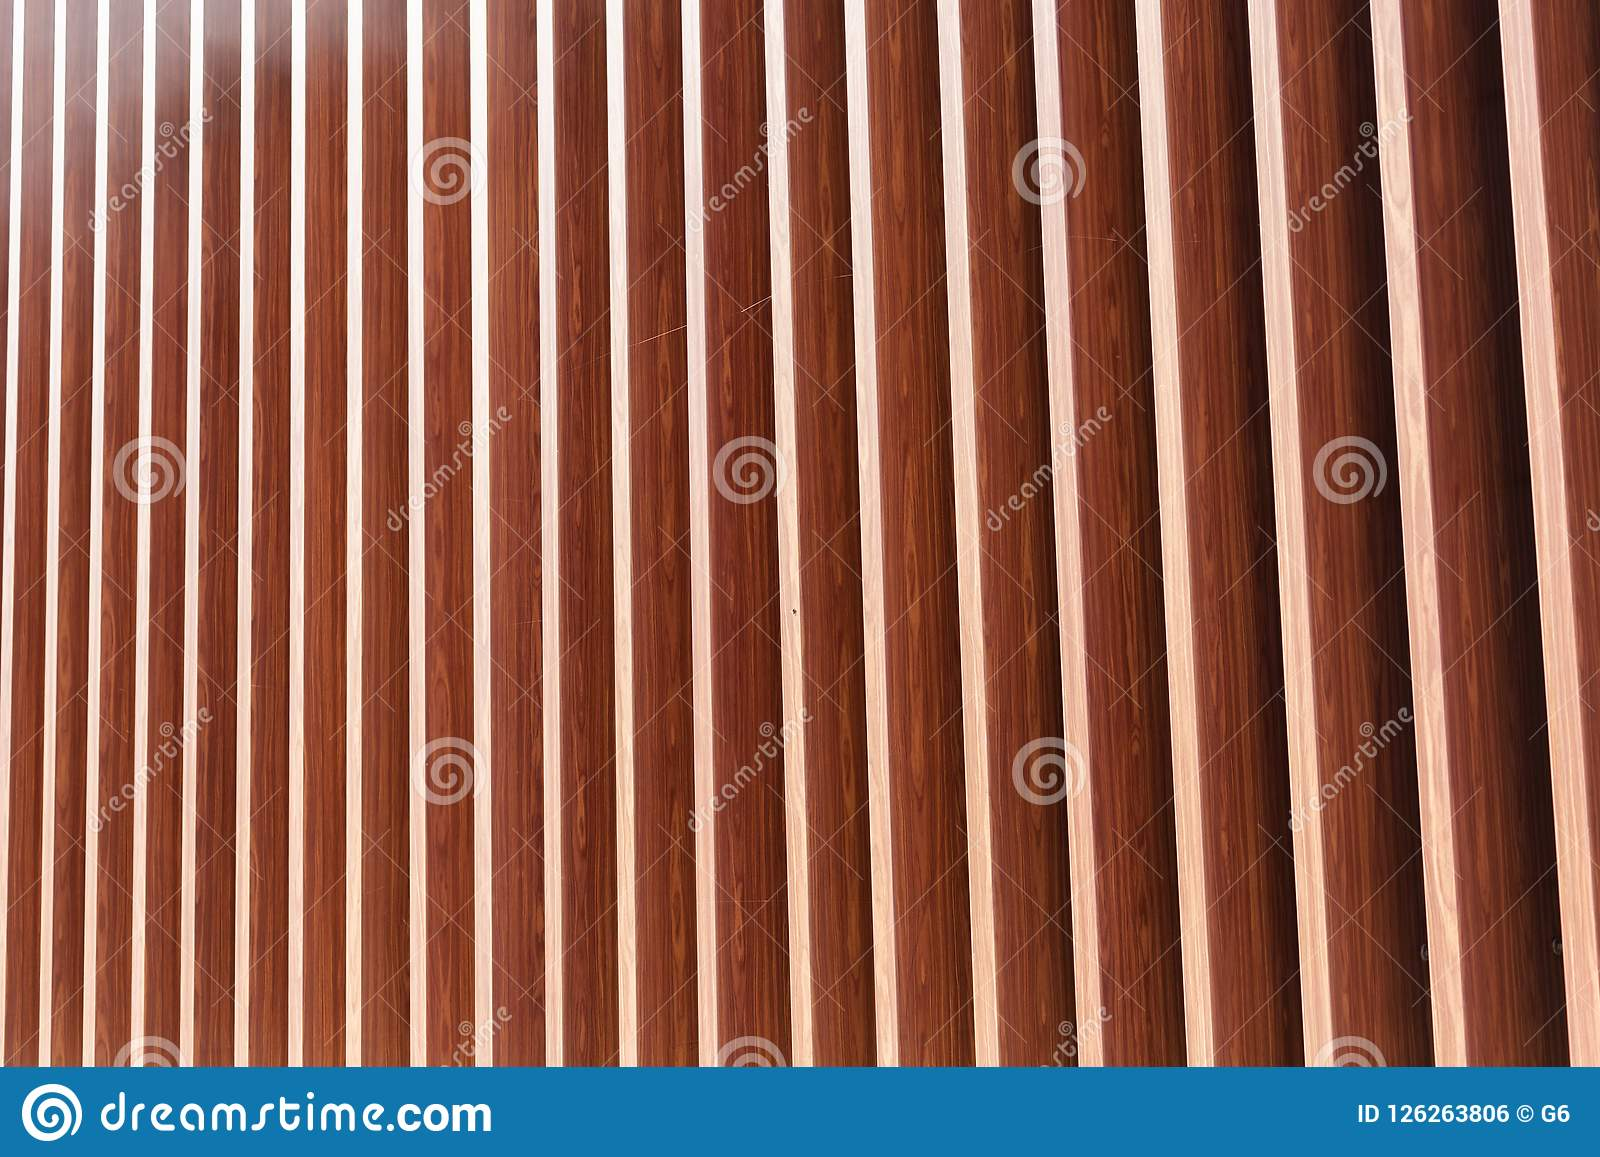 Vertical Wood Slat Wall Wooden Vertical Slats On A Wall Background Stock Photo Image Of